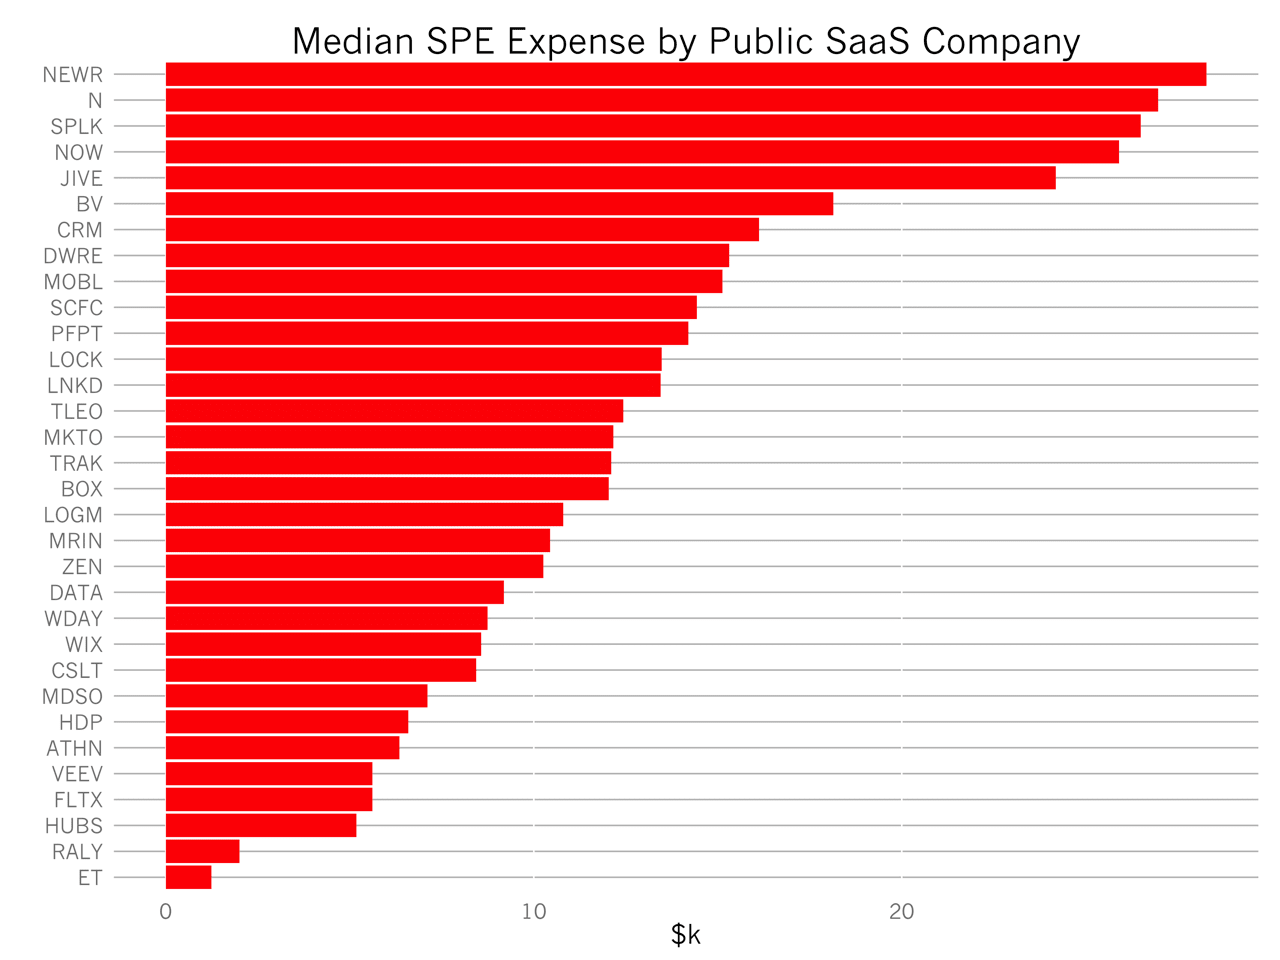 Benchmarks for Employee Stock Based Compensation in SaaS